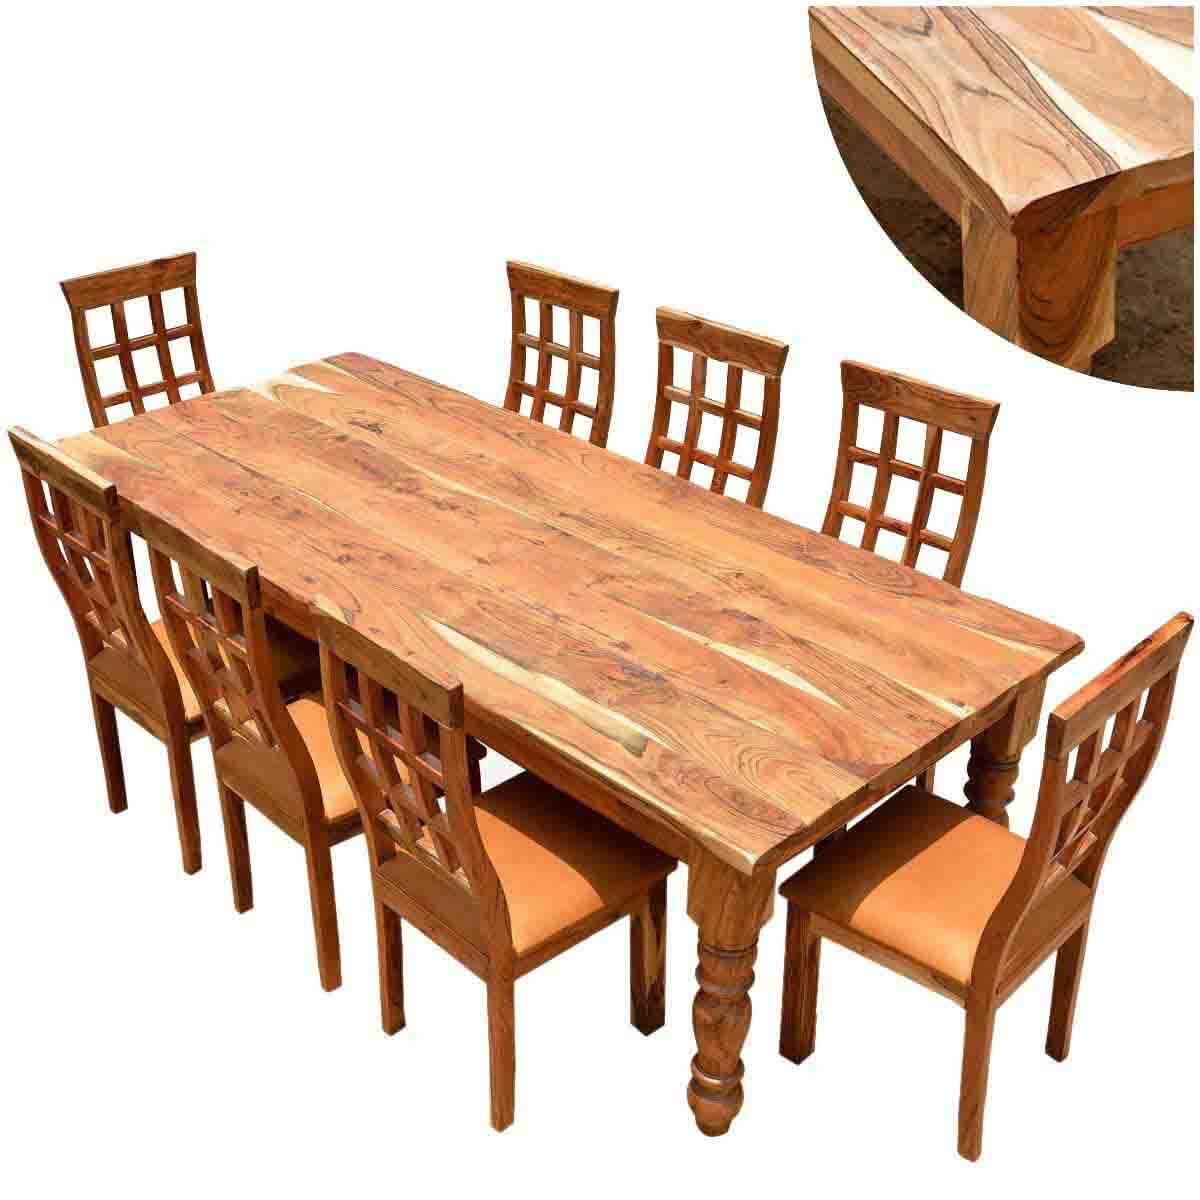 rustic dining table and chairs installing chair rail picture frame molding sets sierra living concepts